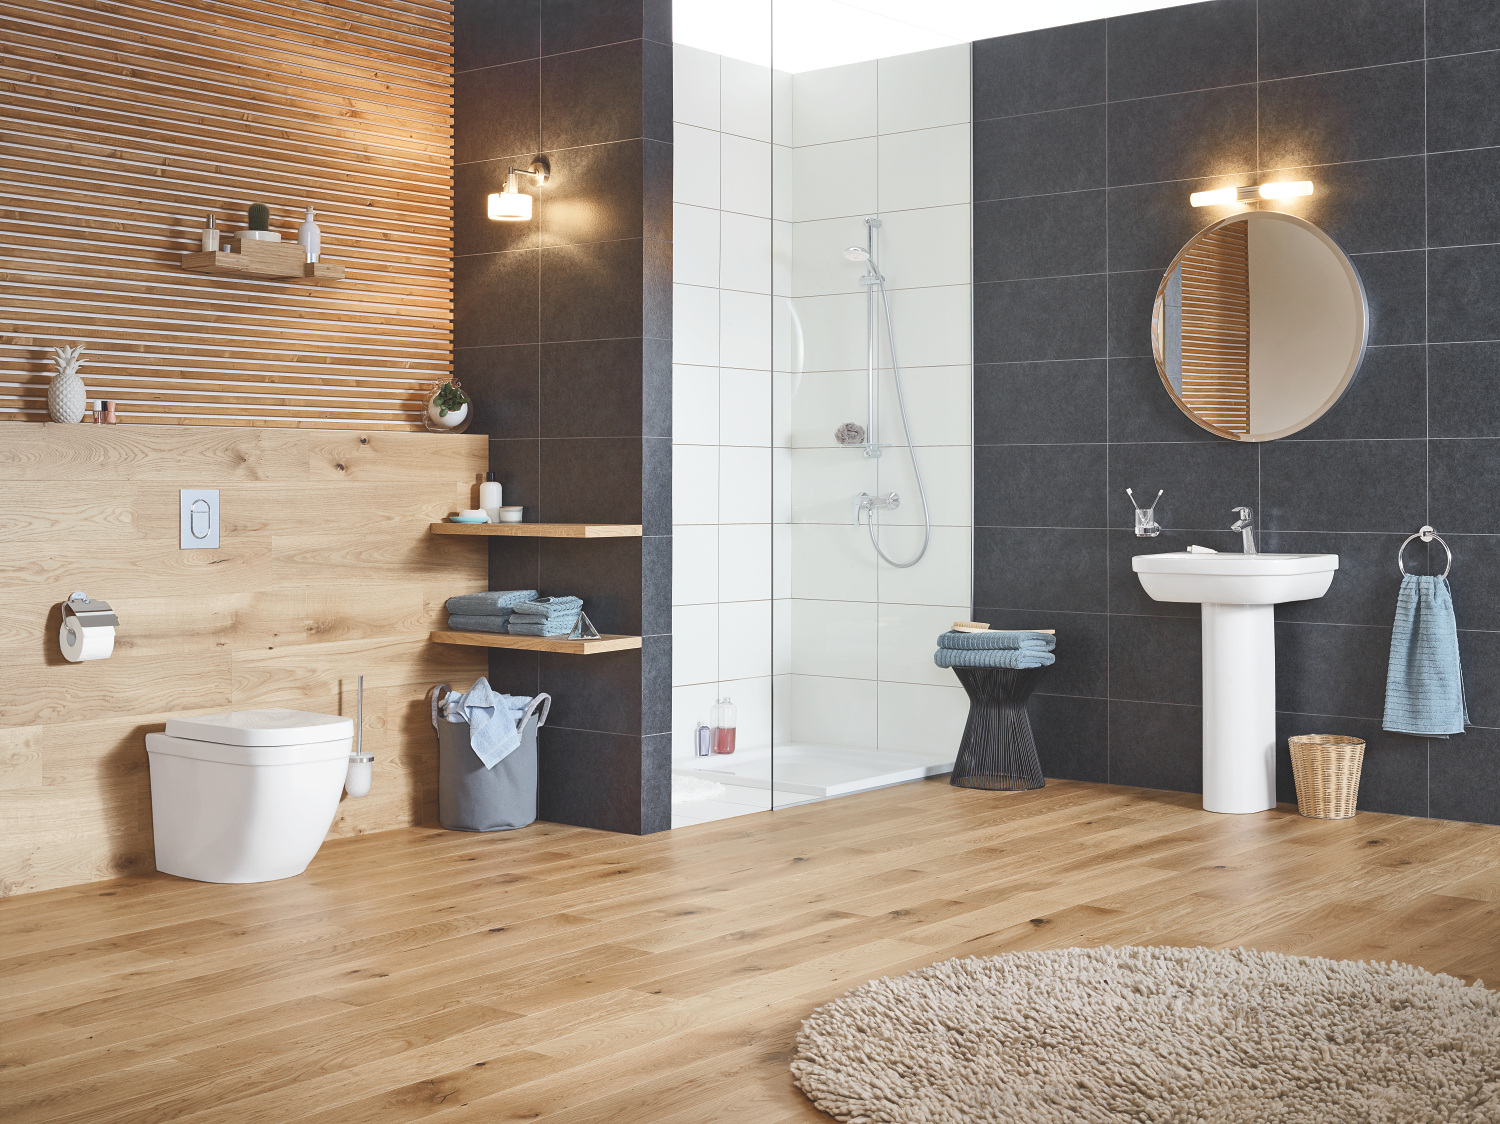 Grohe launches new Euro Ceramics range